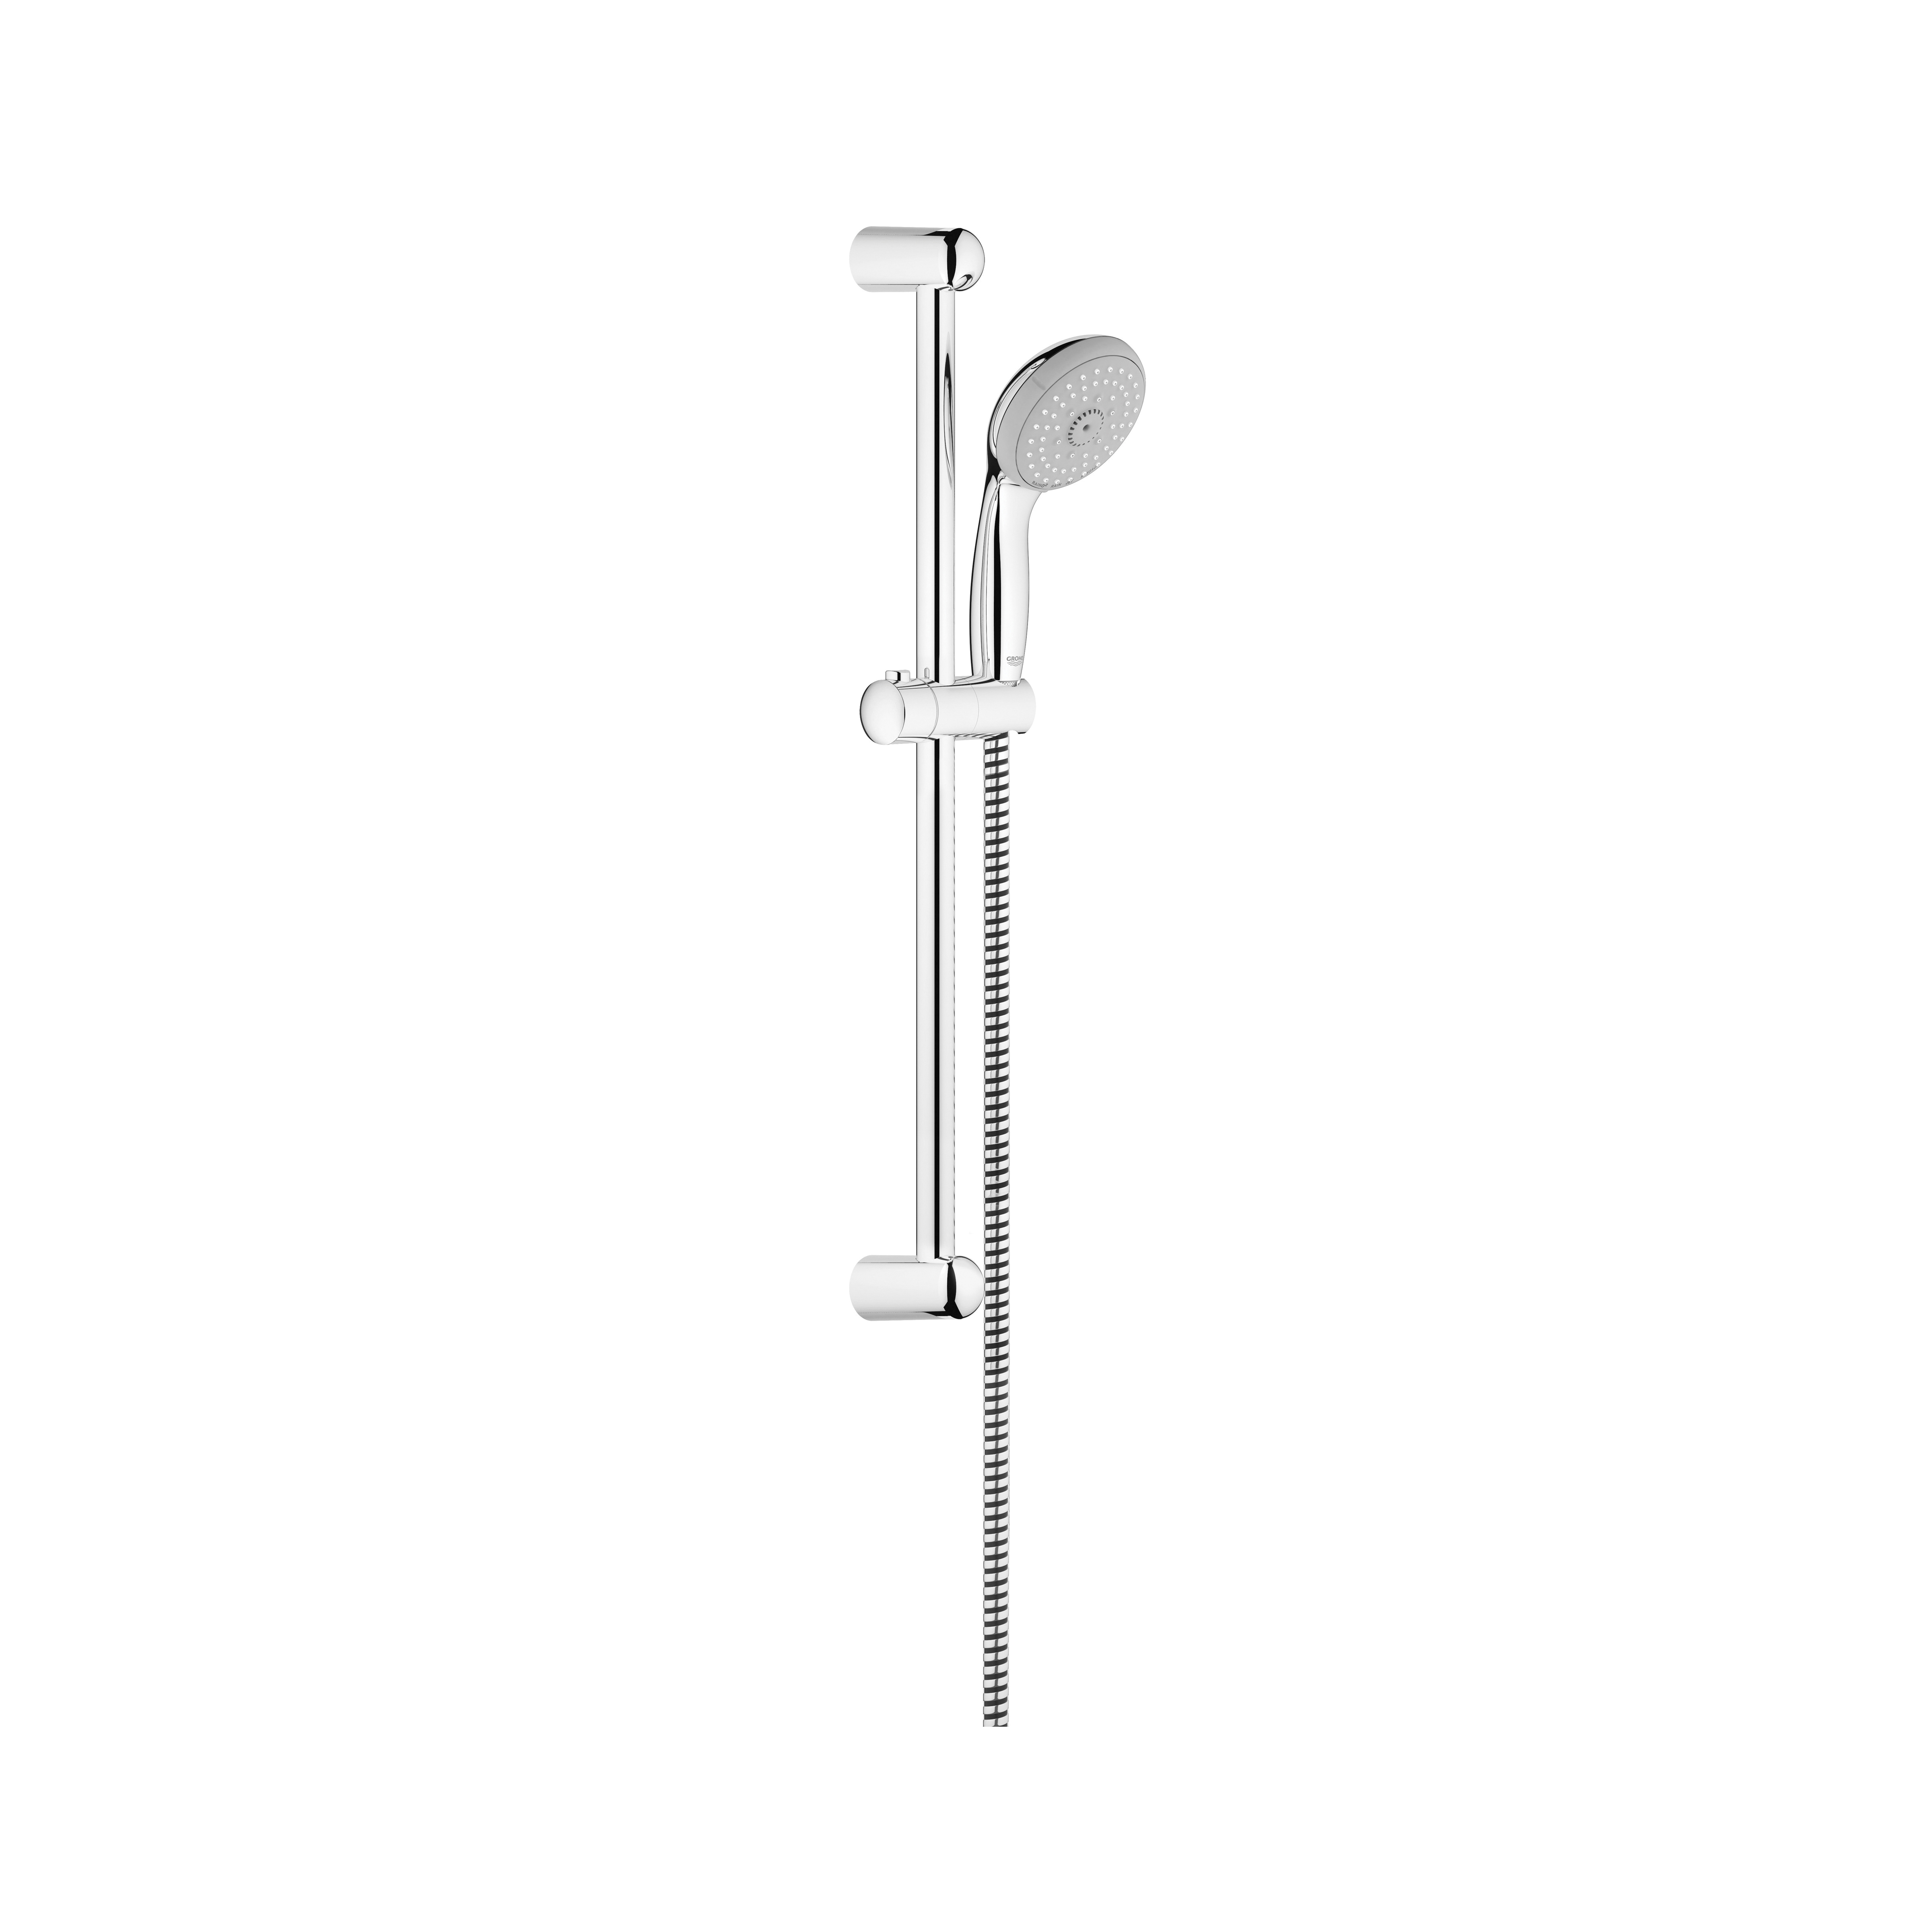 GROHE 26077000 New Tempesta® 100 Shower Rail Set, 3-15/16 in Dia Head, 2 gpm, 69 in L Hose, G-1/2, Chrome Plated, Import